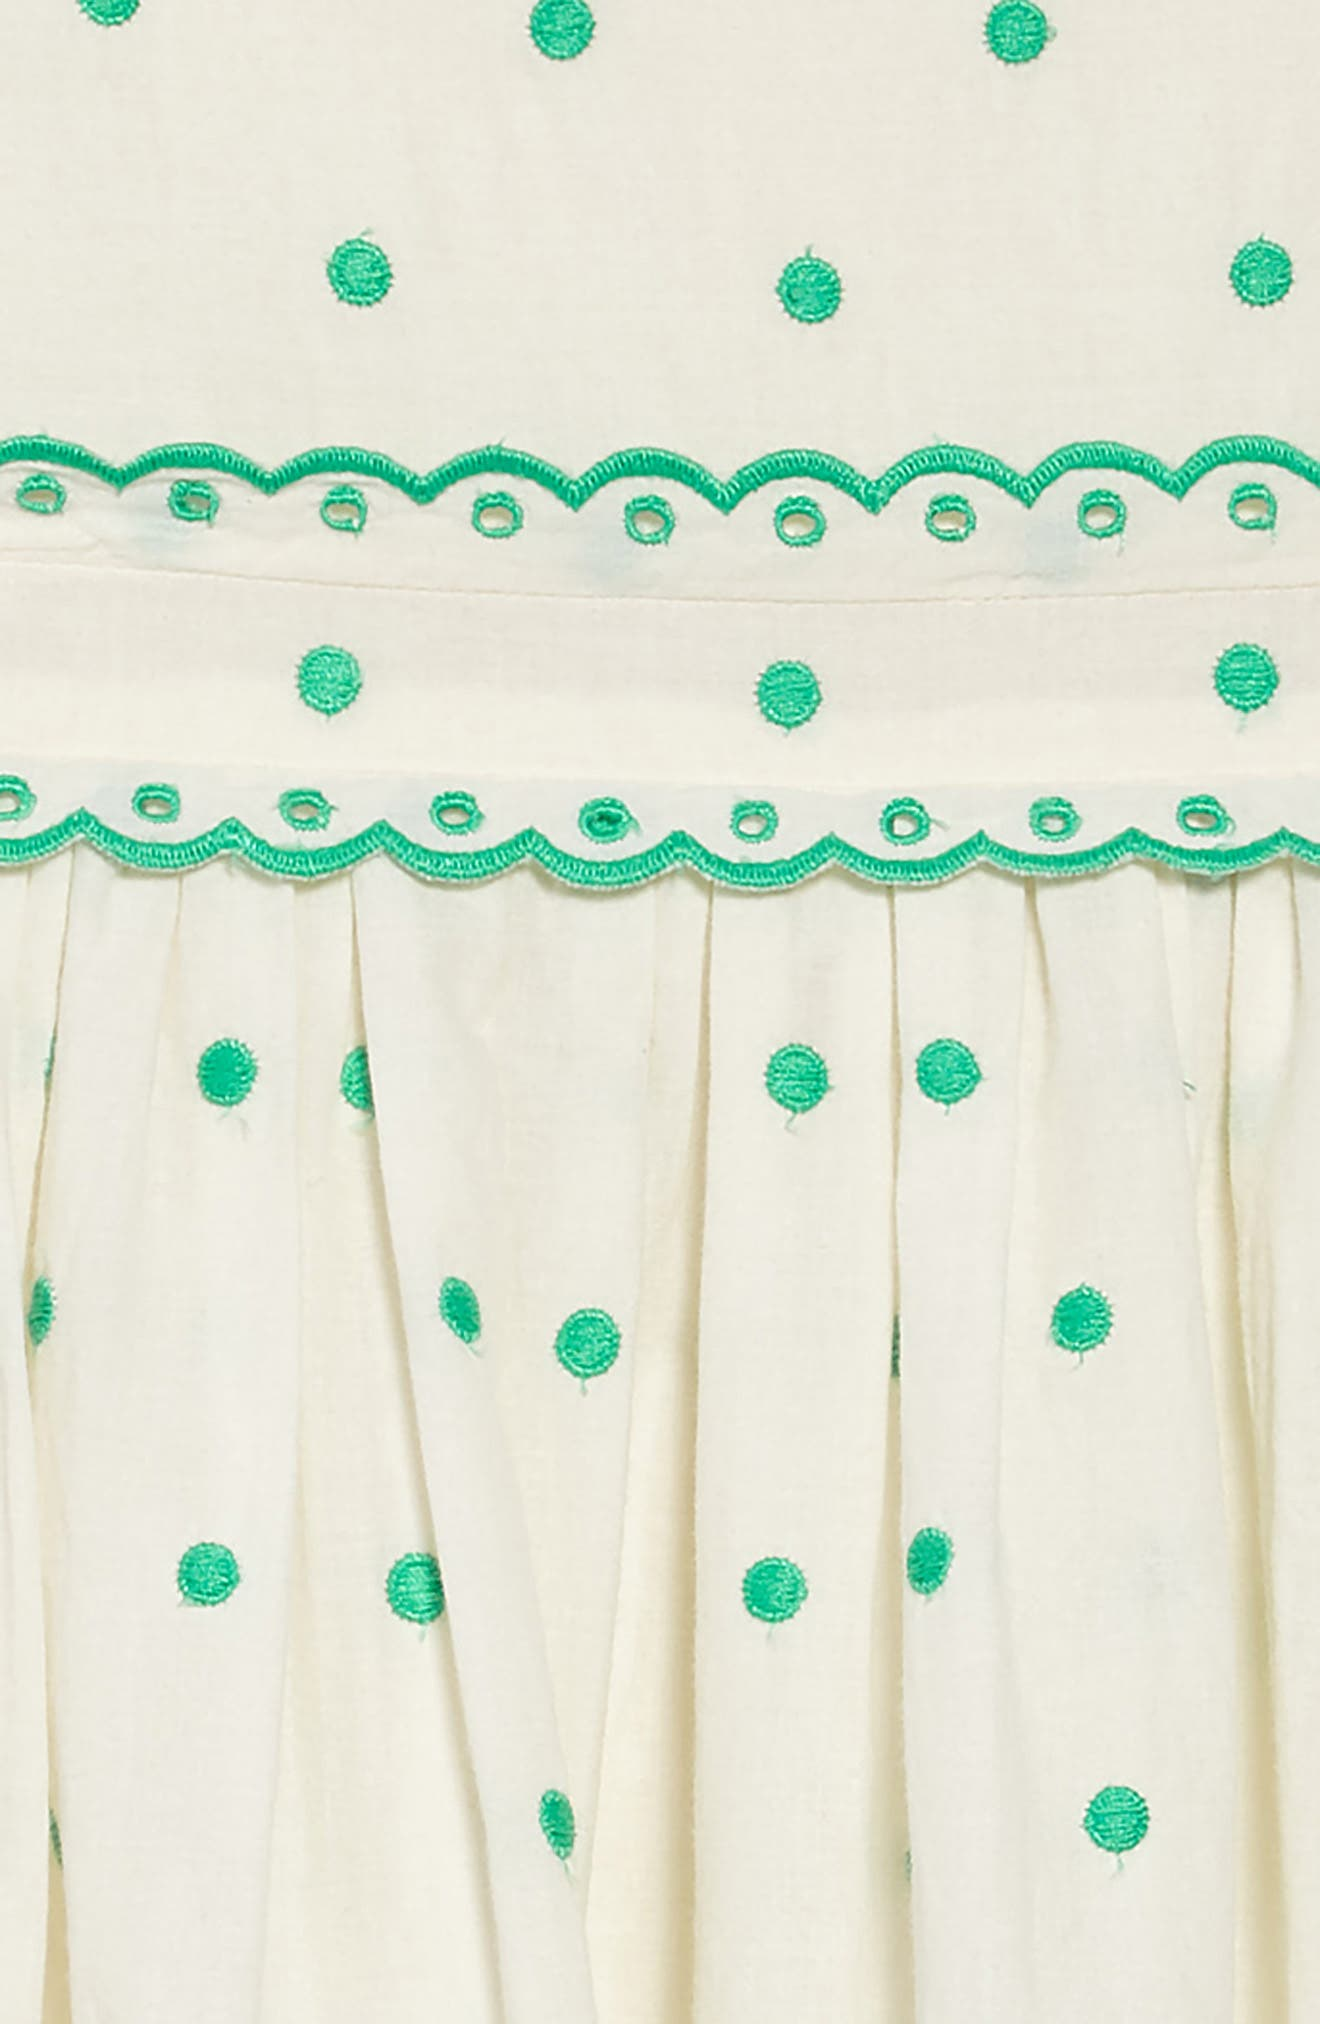 Embroidered Dot Scalloped Dress,                             Alternate thumbnail 3, color,                             Sptecru/ Mint Embroidered Spot